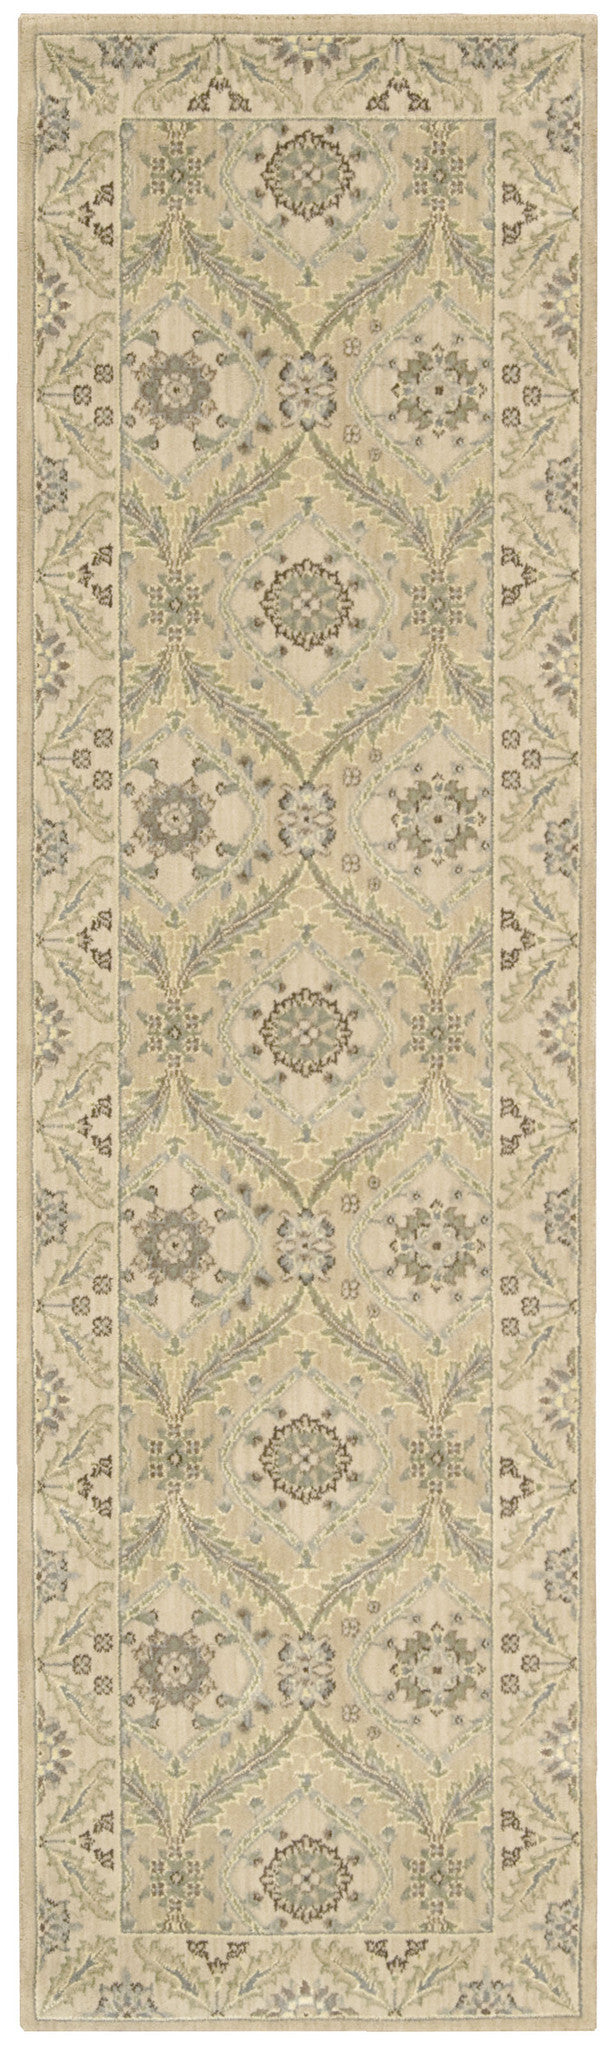 Nourison Persian Empire Light Gold Area Rug PE24 LGD